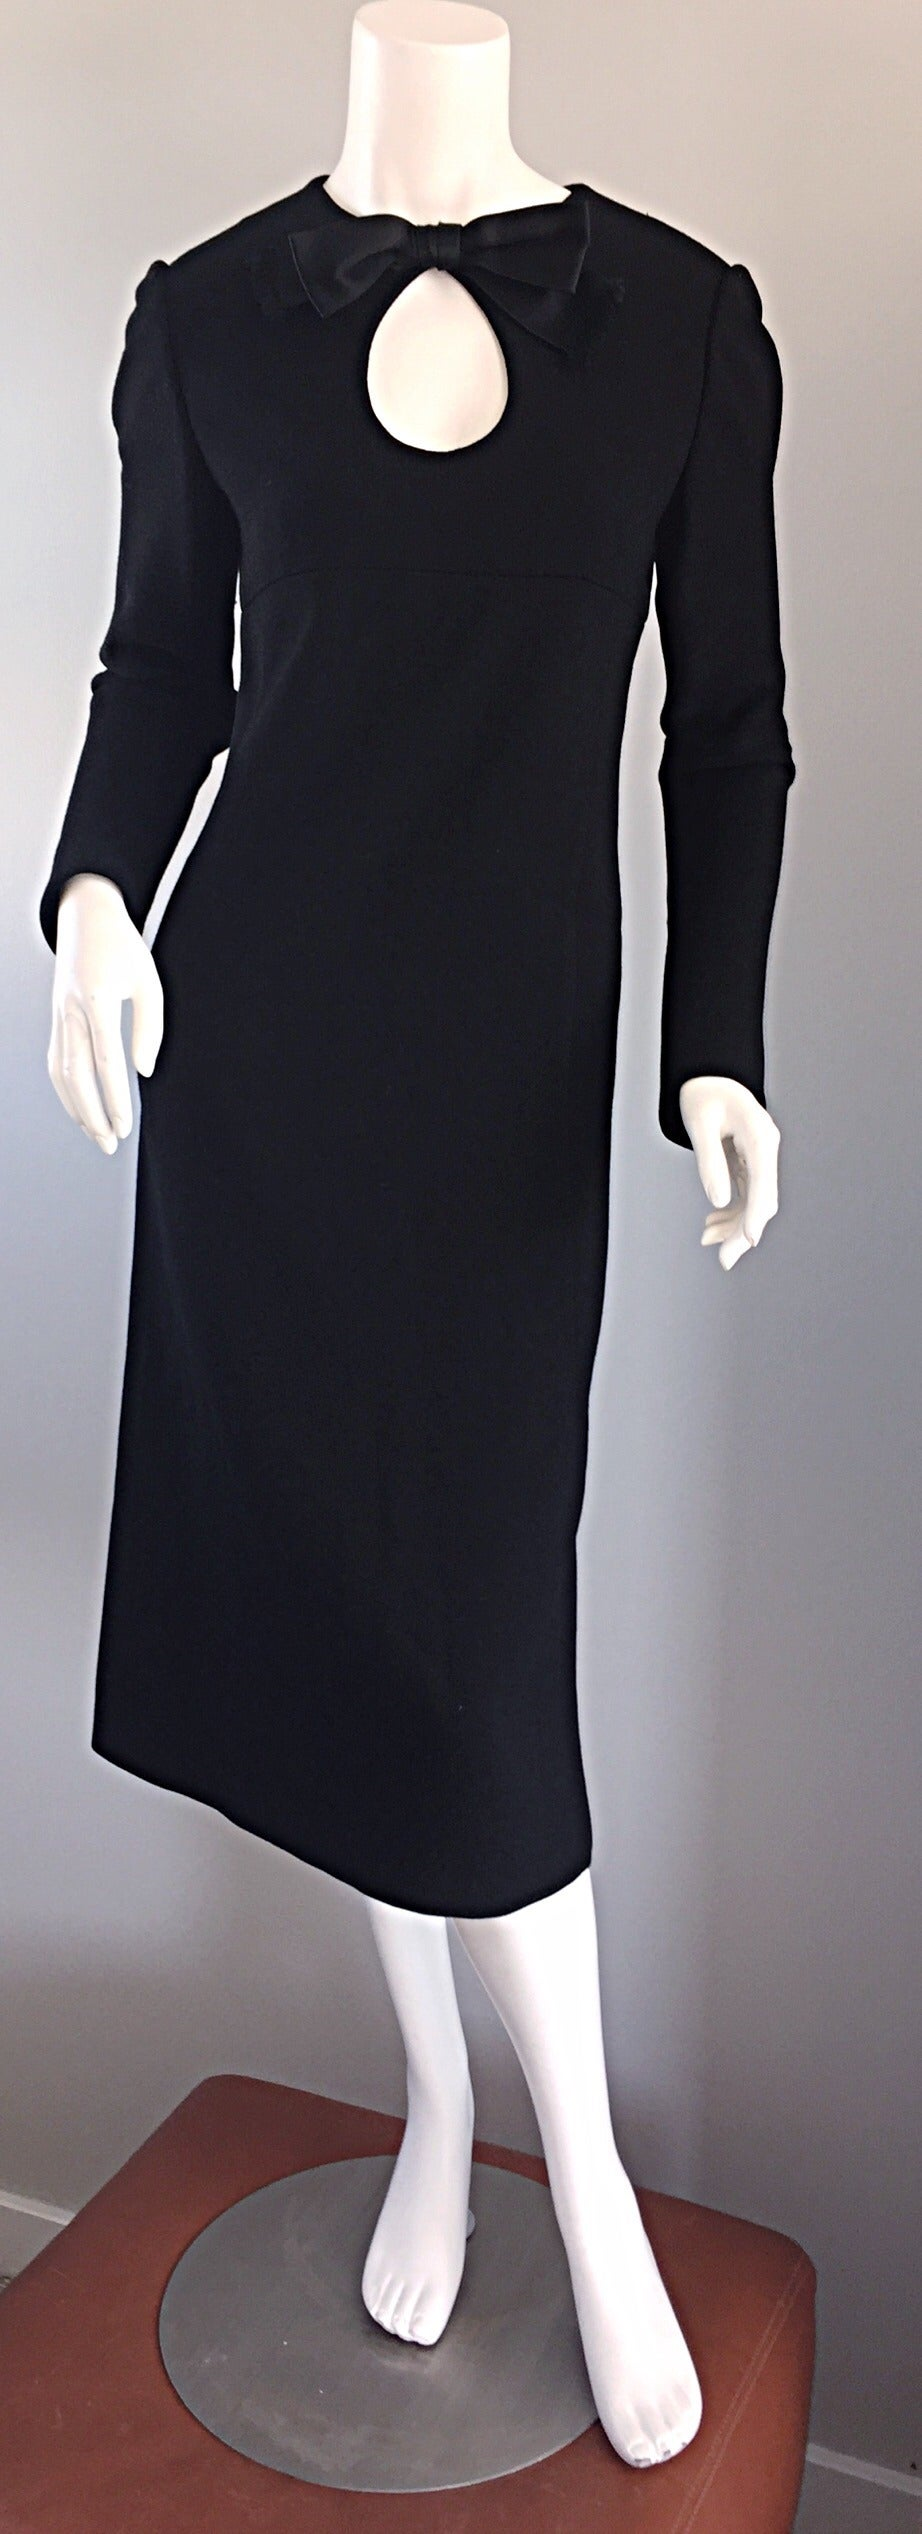 Iconic and rare! 1960s Pierre Carding black wool midi dress! A sleek design, witha  slight A-Line fit that looks incredible on the body! Chic cut-out above bust, adorned with a silk bow. Tailored long sleeves. A classic, yet stylish staple for any